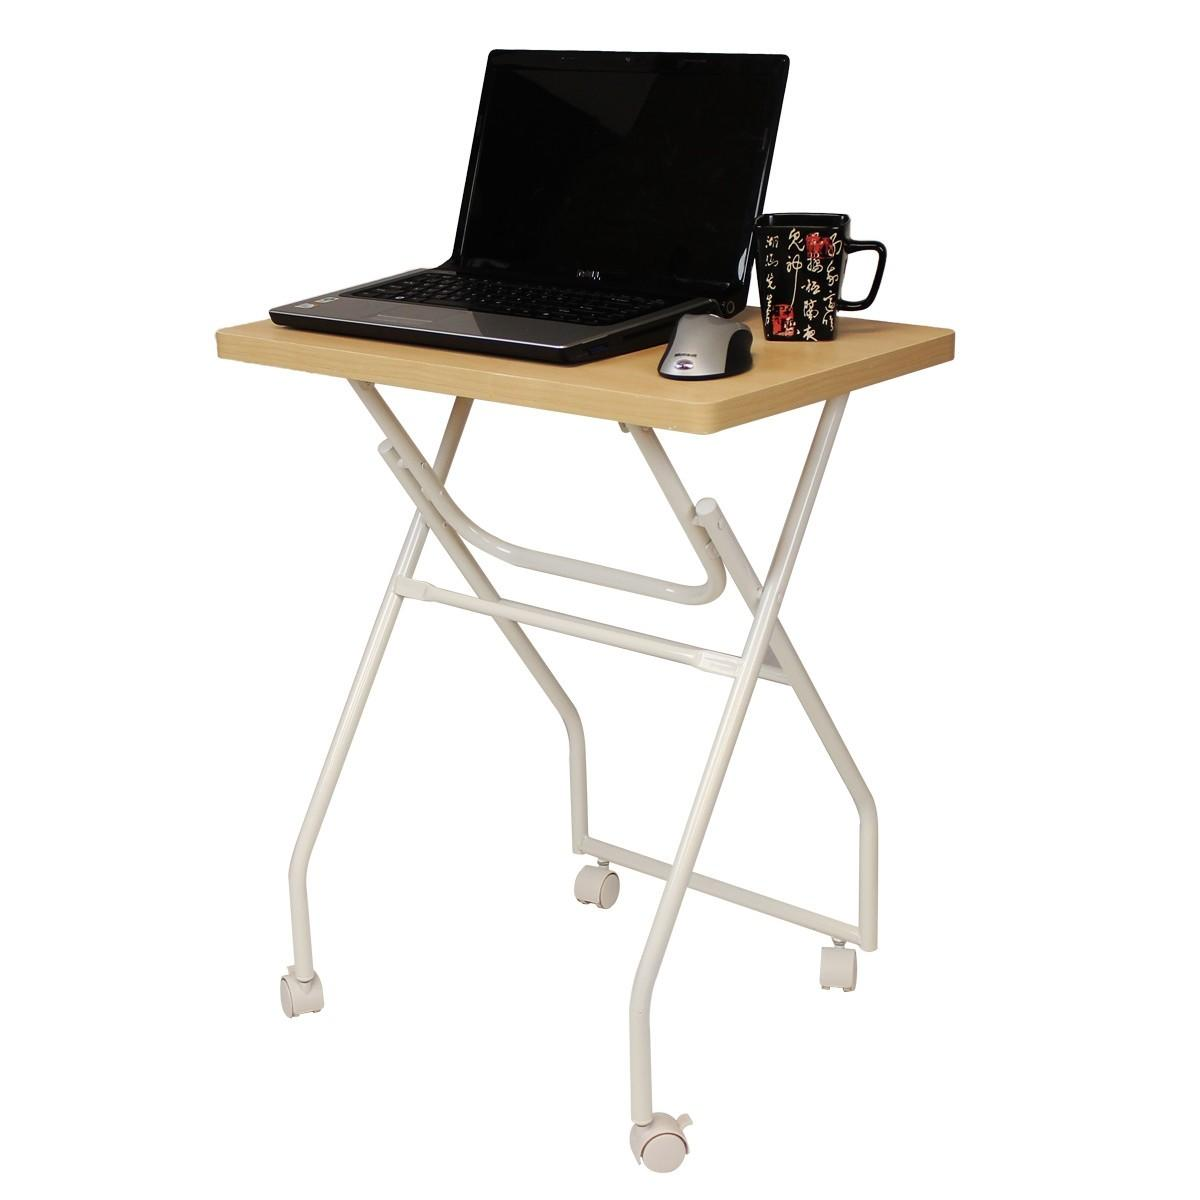 Wood Coffee Table Laptop Tray White Metal Stand